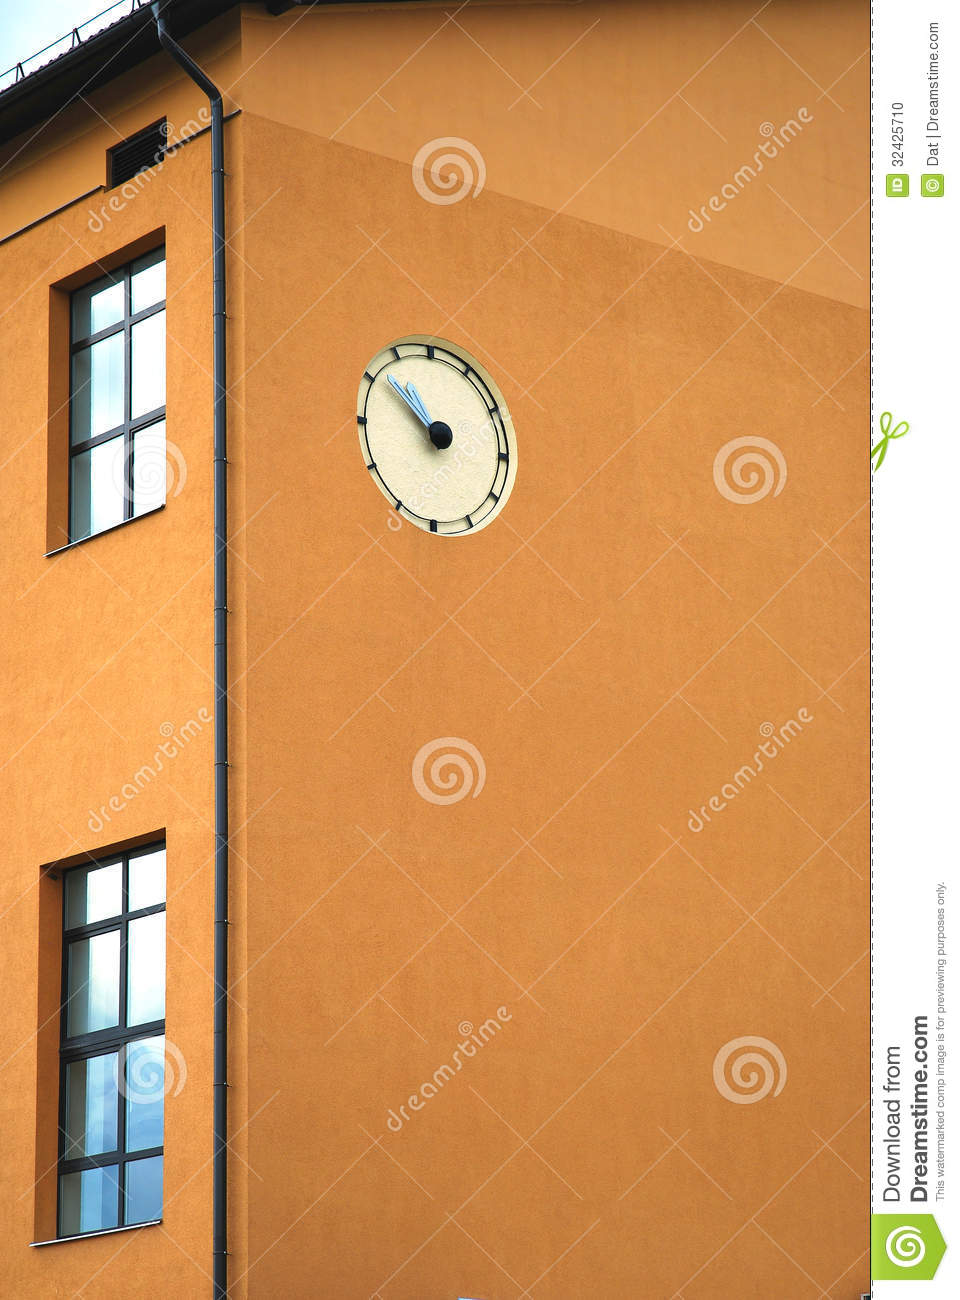 Wall Clock On A Building Stock Photo Image 32425710